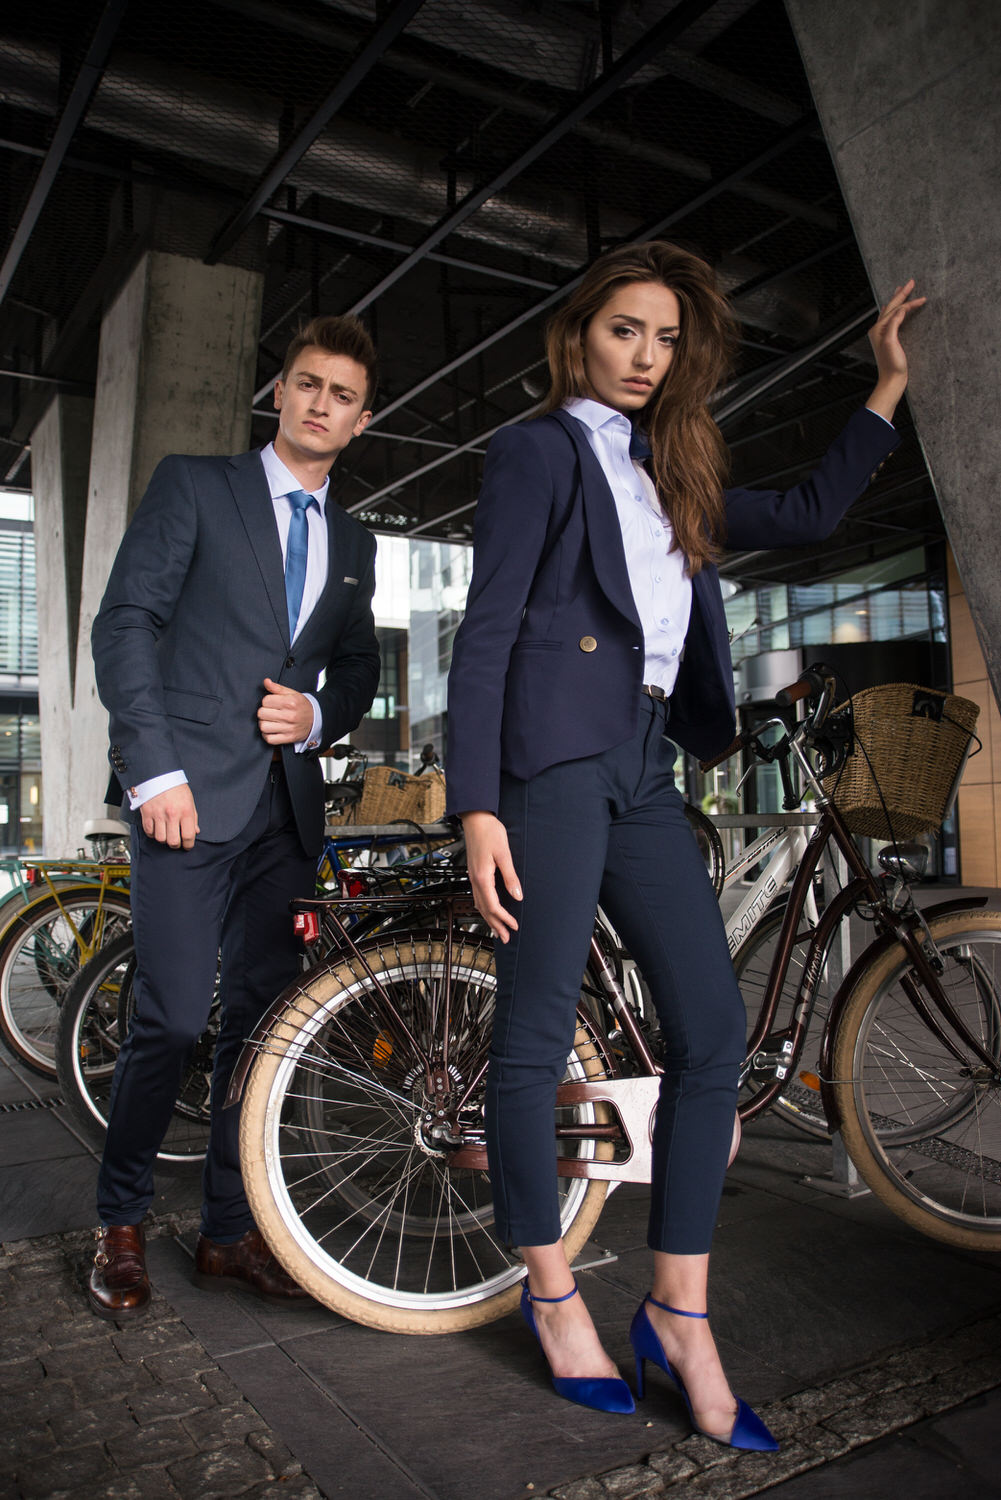 mens-and-womens-shirts-with-bikes.jpg